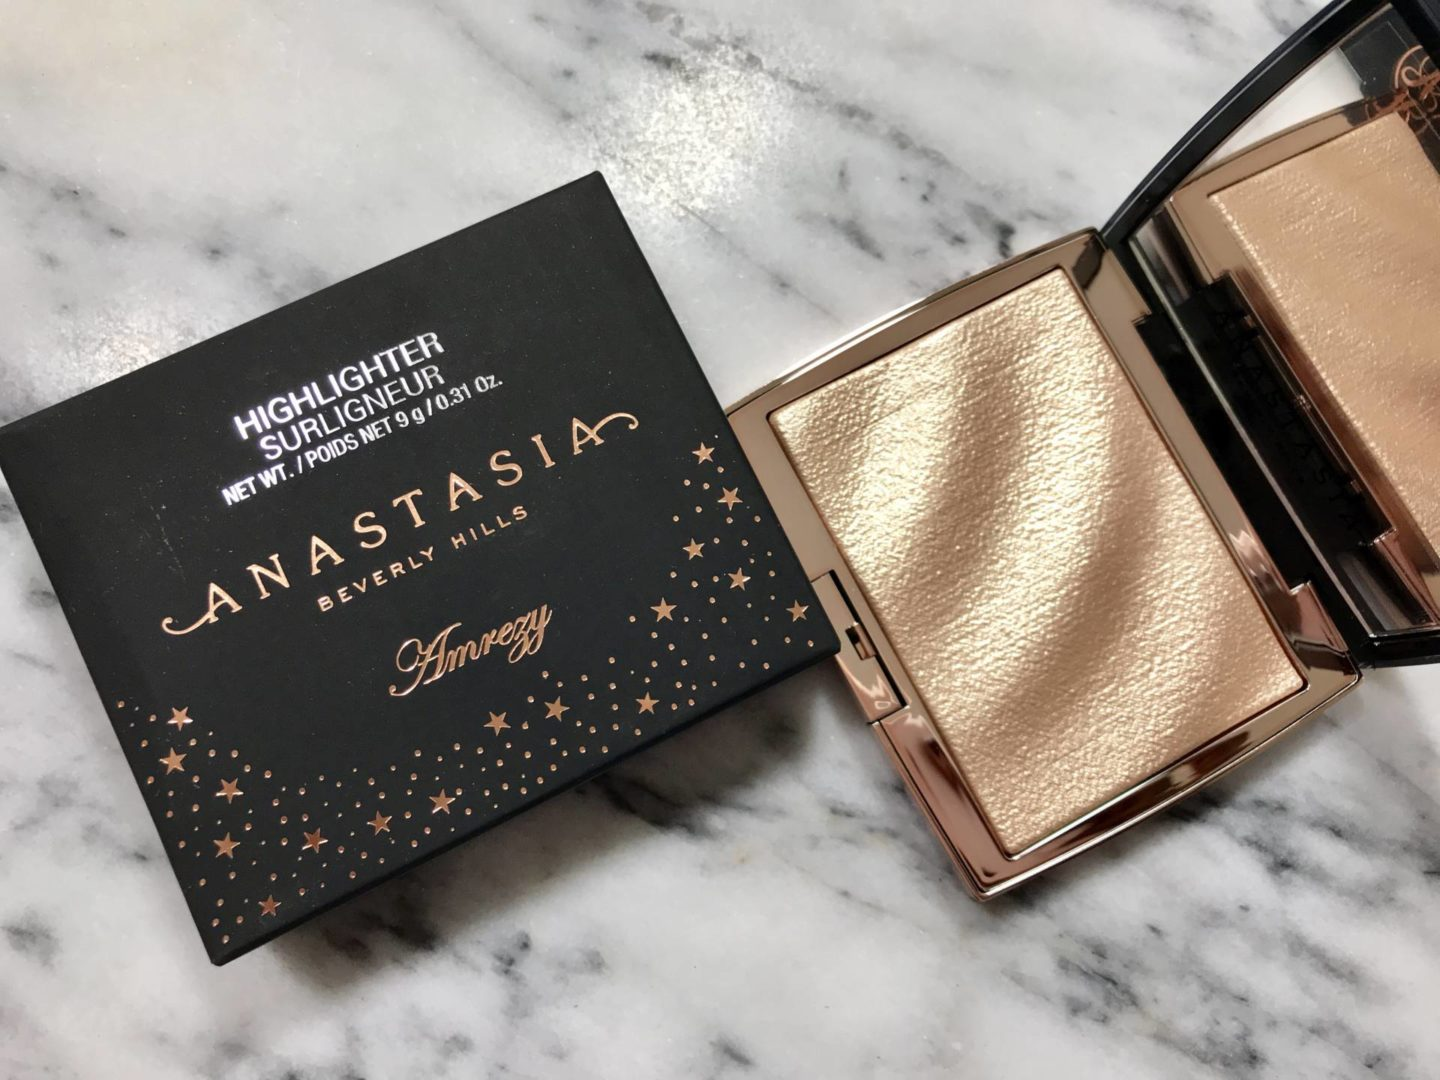 amrezy-highlighter-1440x1080.jpg